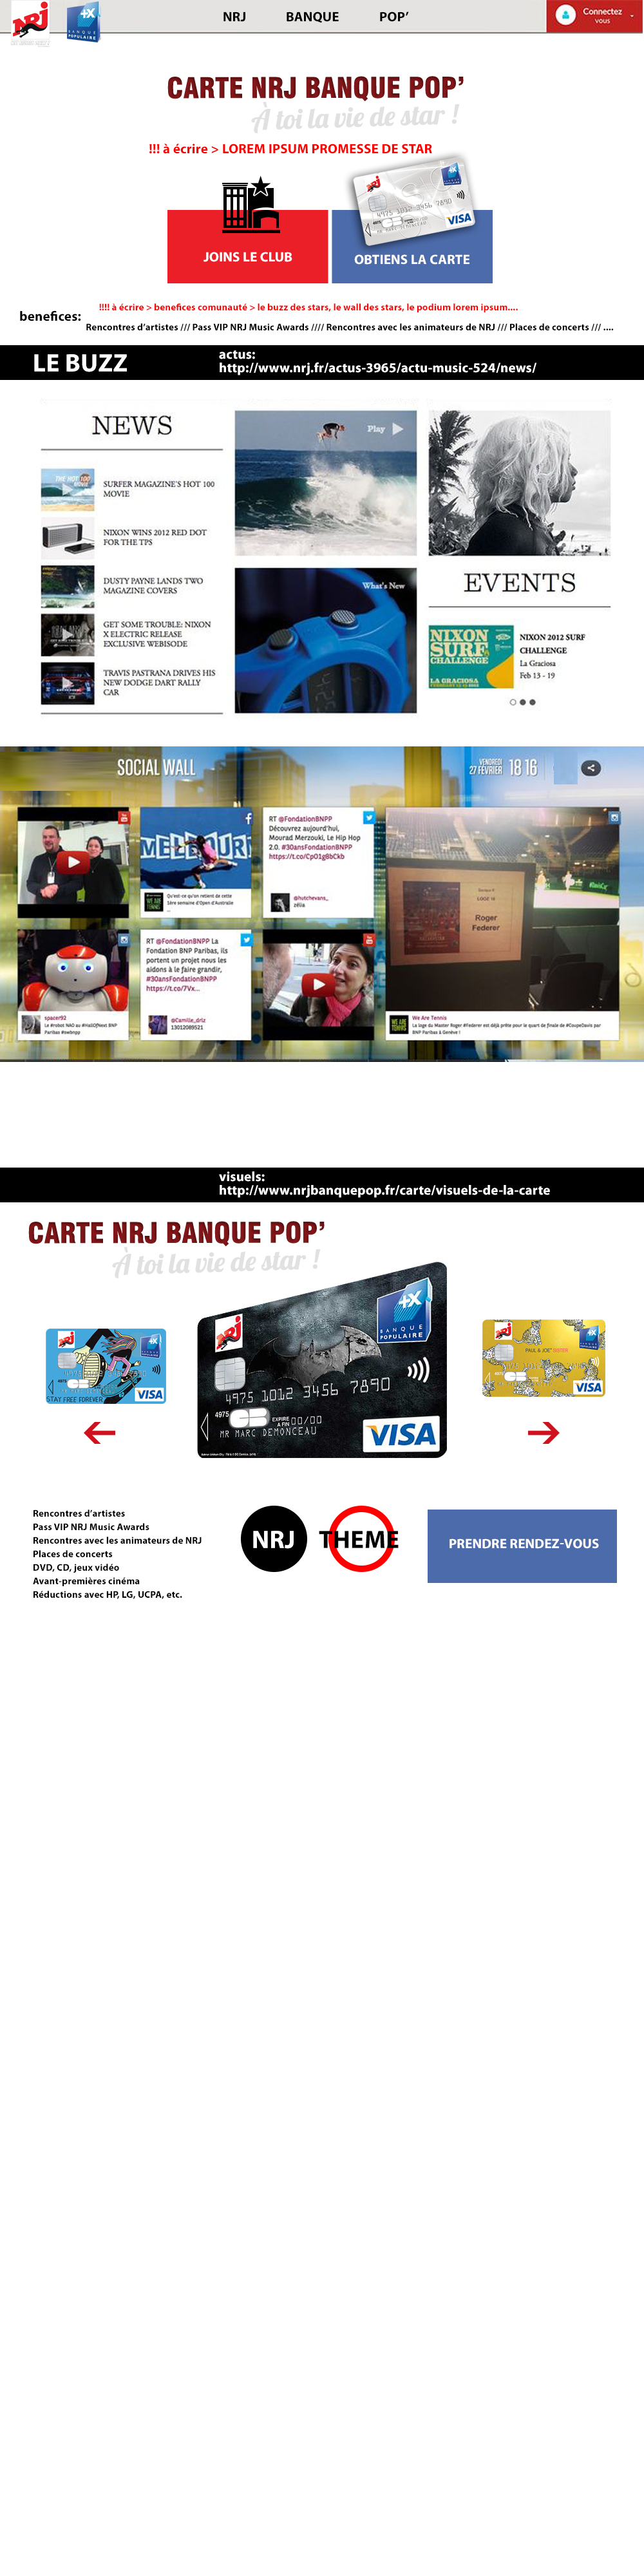 Nrj Banque Pop Pitch Web Design Webpage Layout Create Website